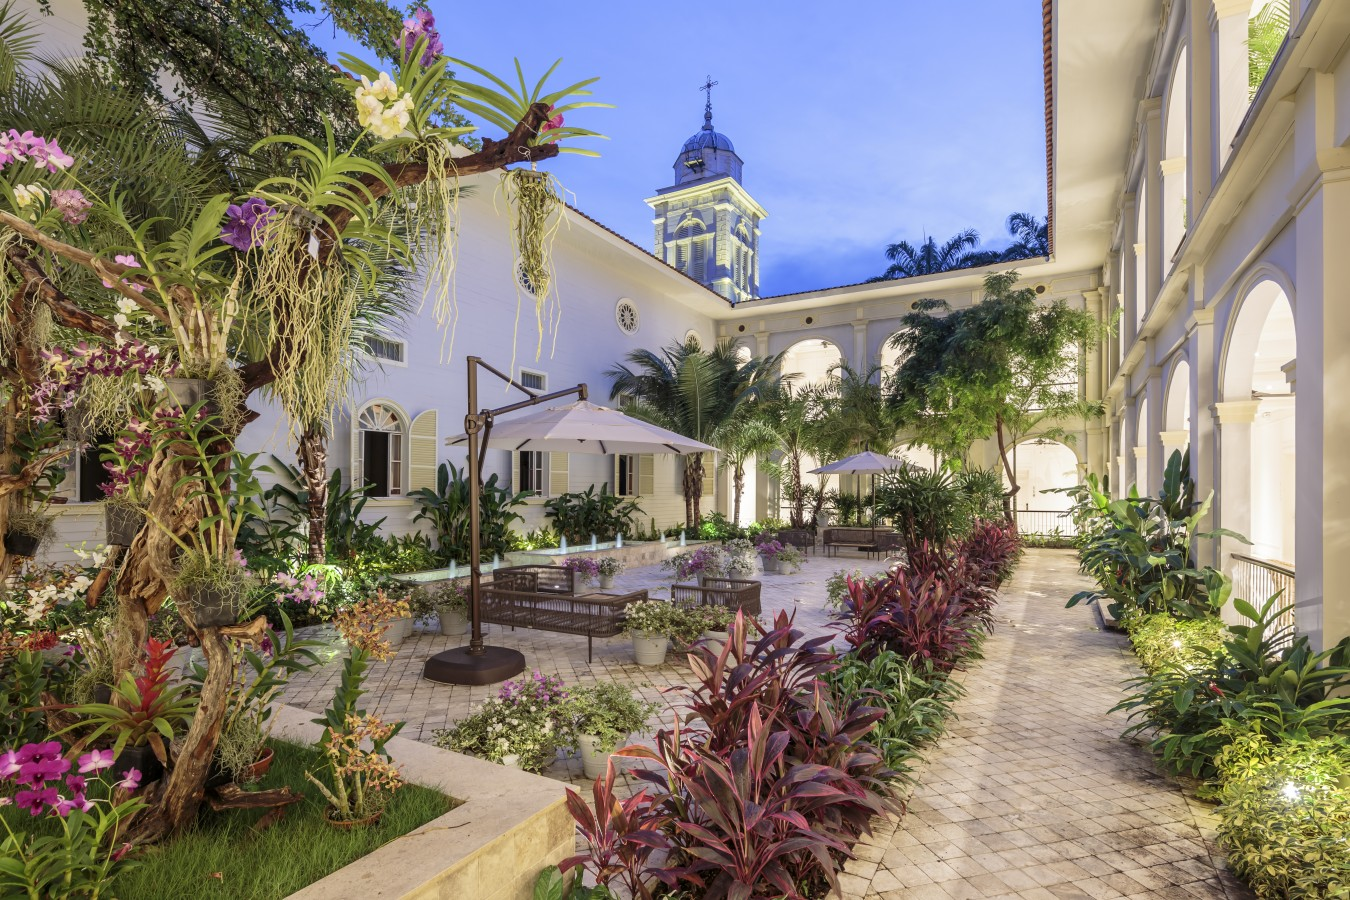 Hotel del Parque, Guayaquil - Luxury holiday to Ecuador